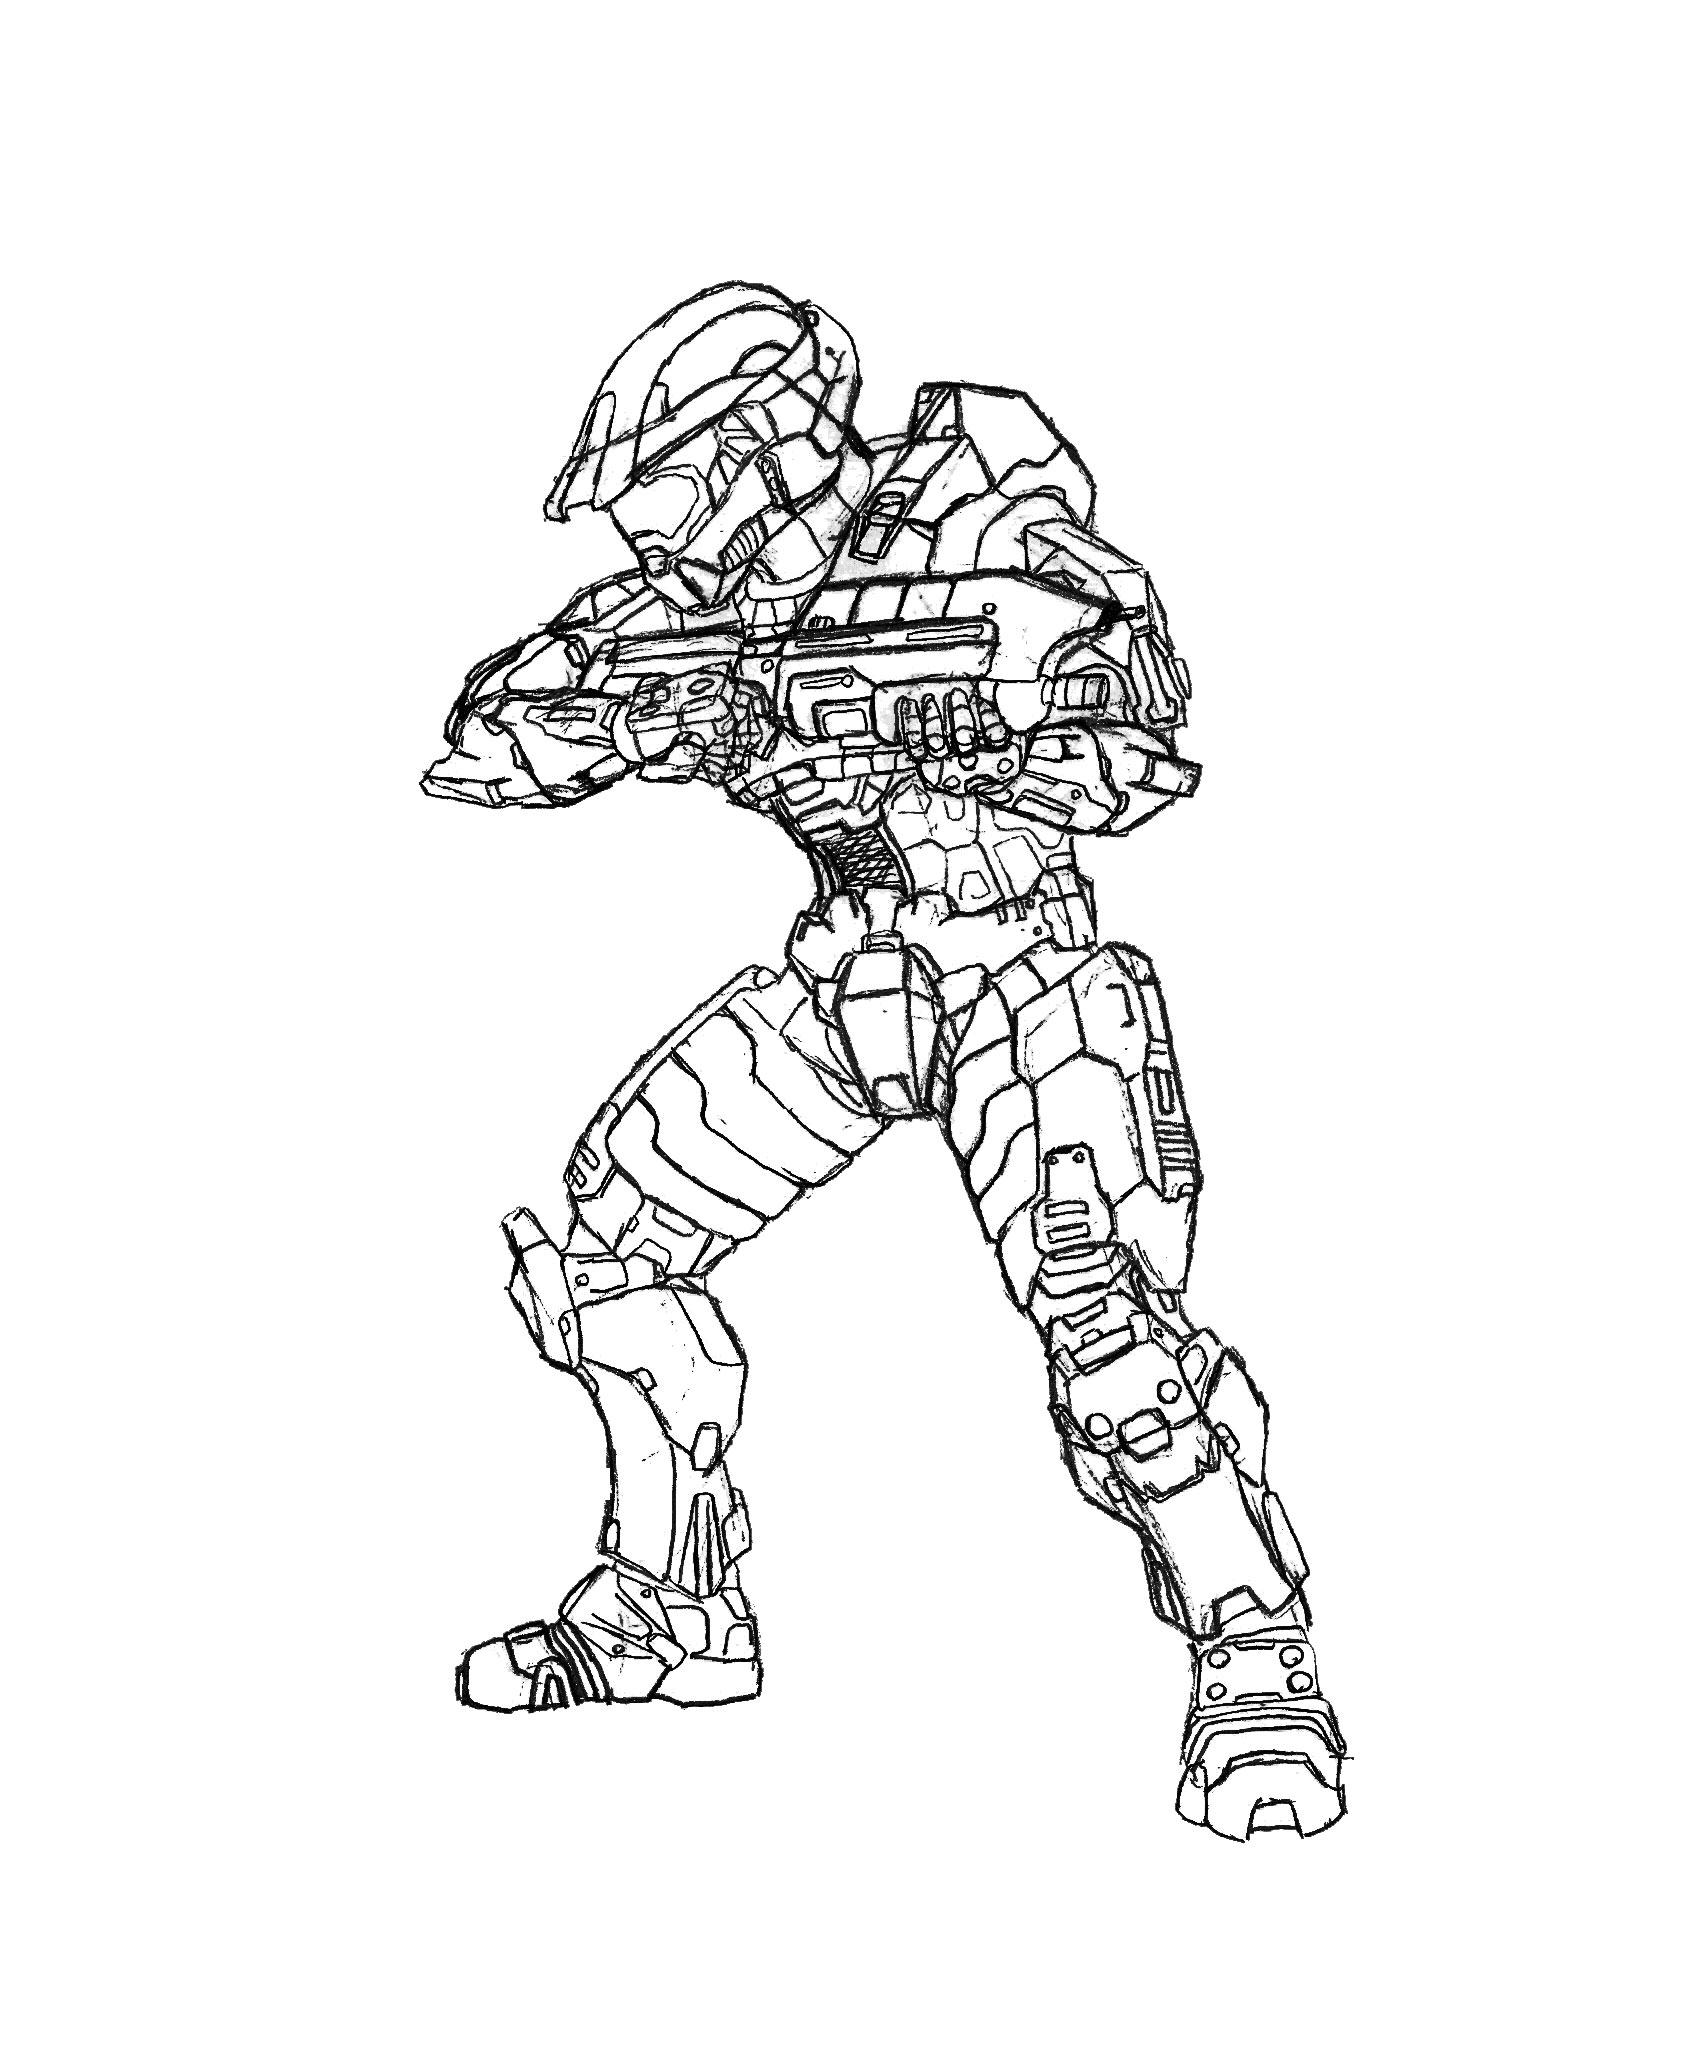 how to draw a spartan helmet from halo 3